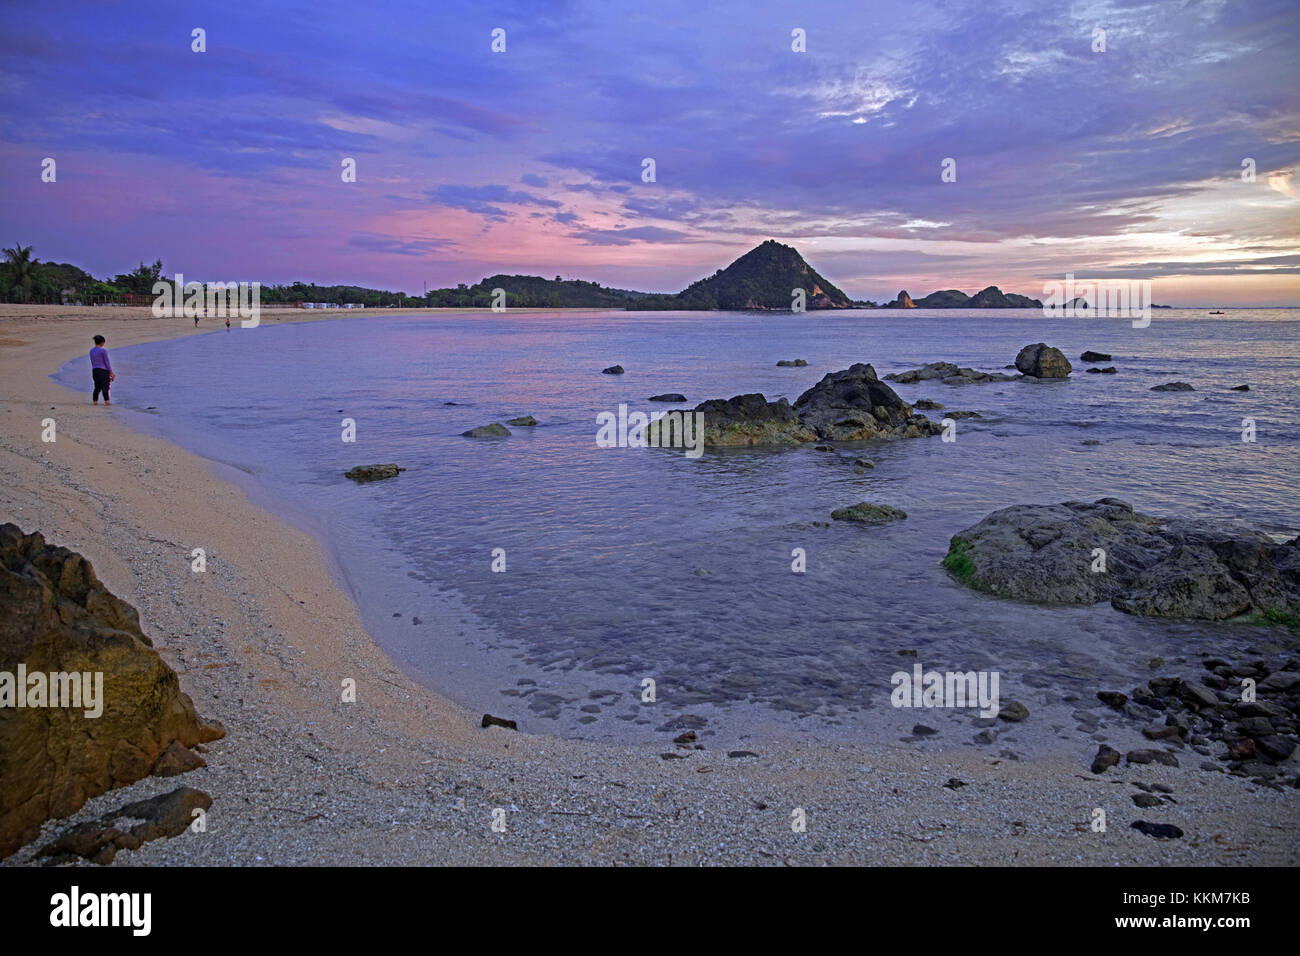 Tourists on Kuta beach at sunset on the island Lombok, Lesser Sunda Islands, Indonesia - Stock Image